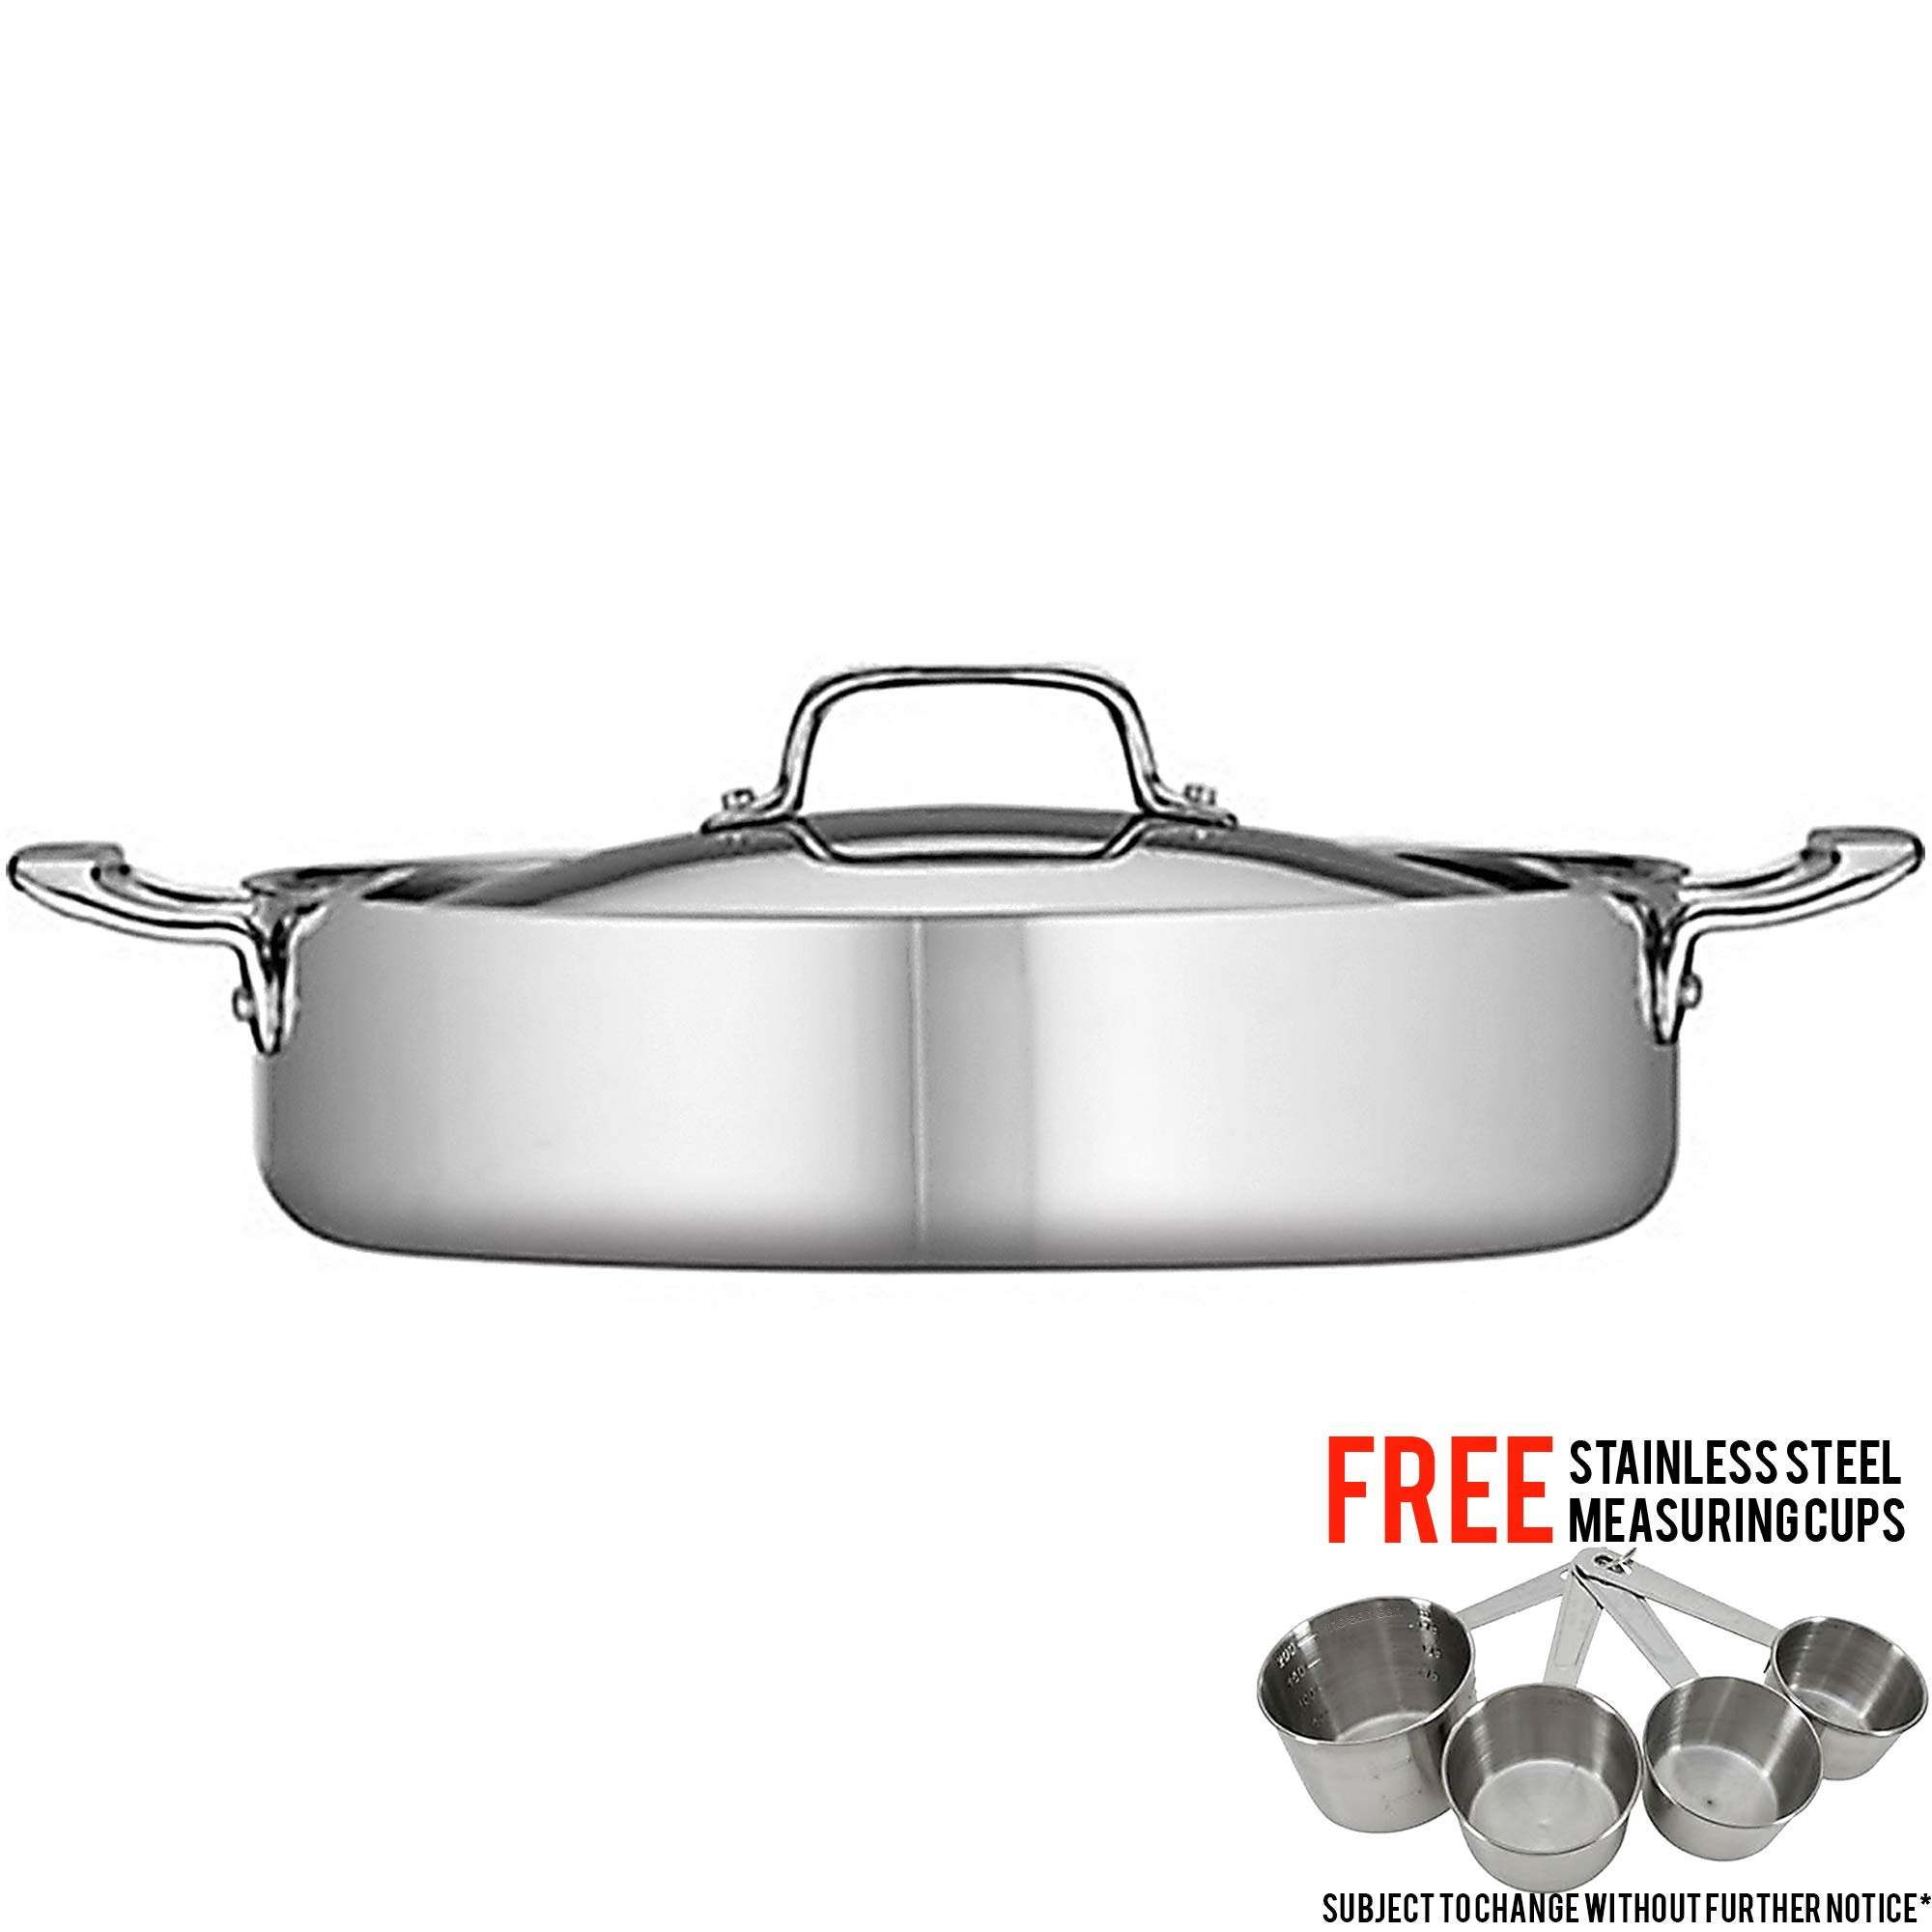 Tramontina 5-Qt Stainless Steel Tri-Ply Clad Covered Braiser Bundled with with Free Stainless Steel Measuring Cup